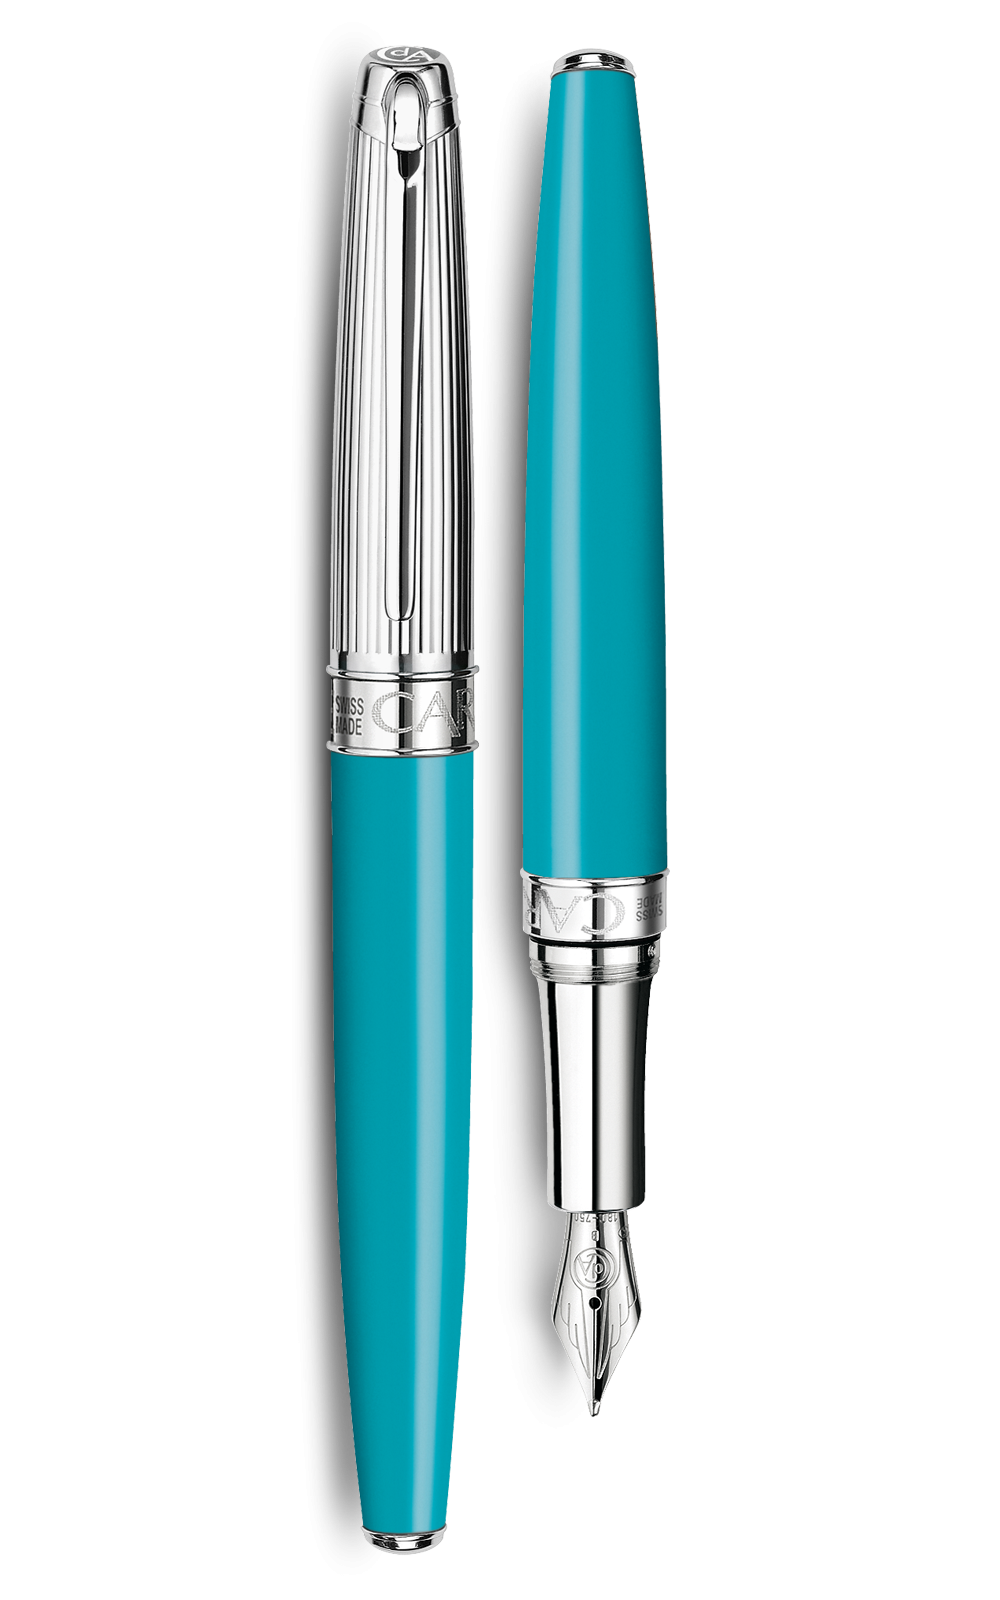 Bút máy LÉMAN BICOLOR TURQUOISE silver-plated, rhodium-coated